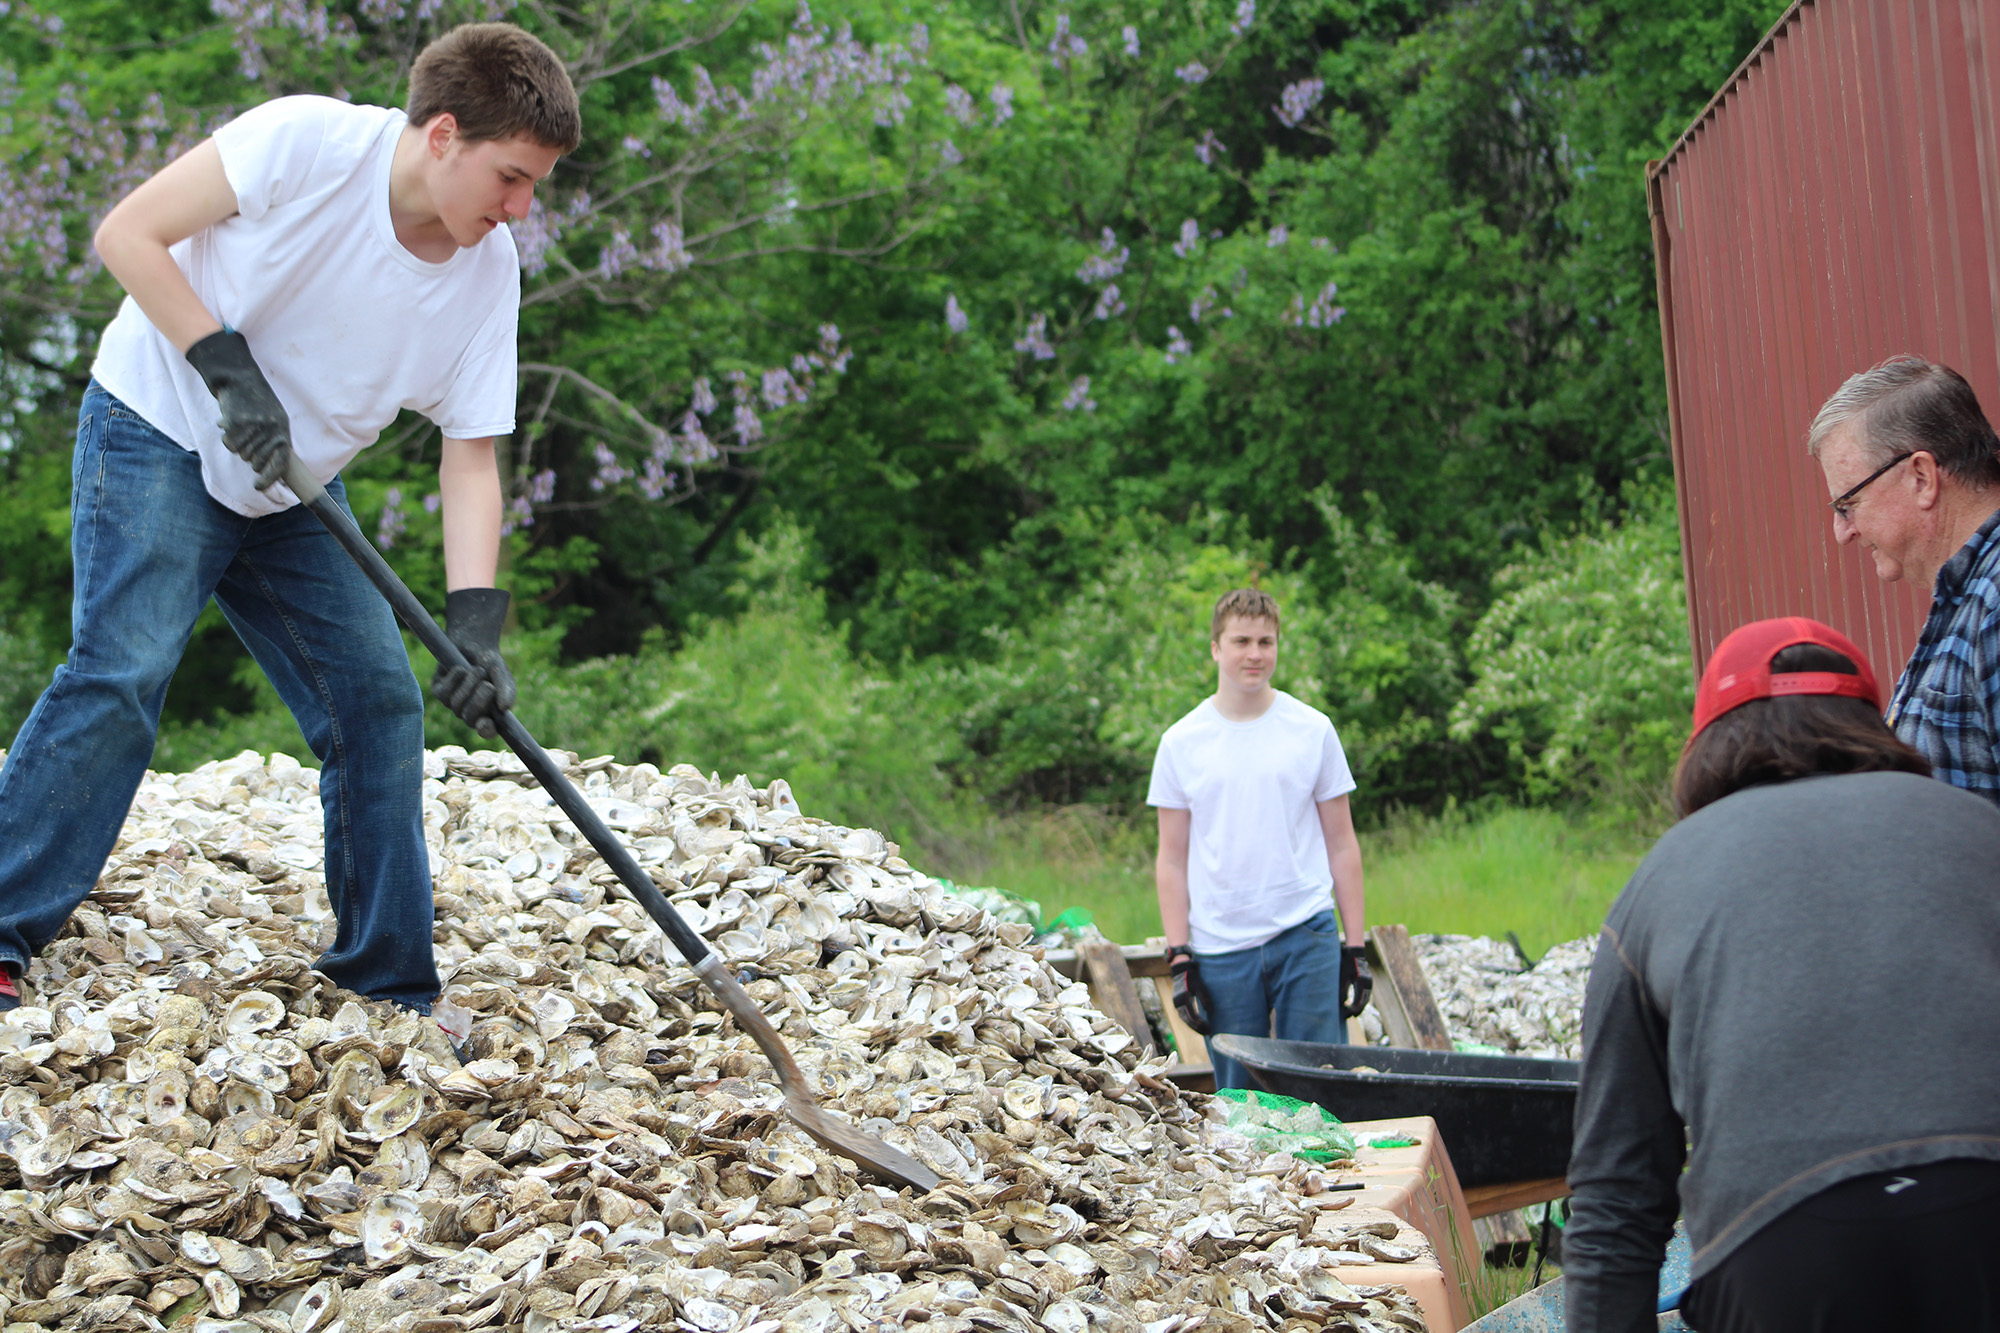 Oyster Shell Bagging With Partnership For The Delaware Estuary